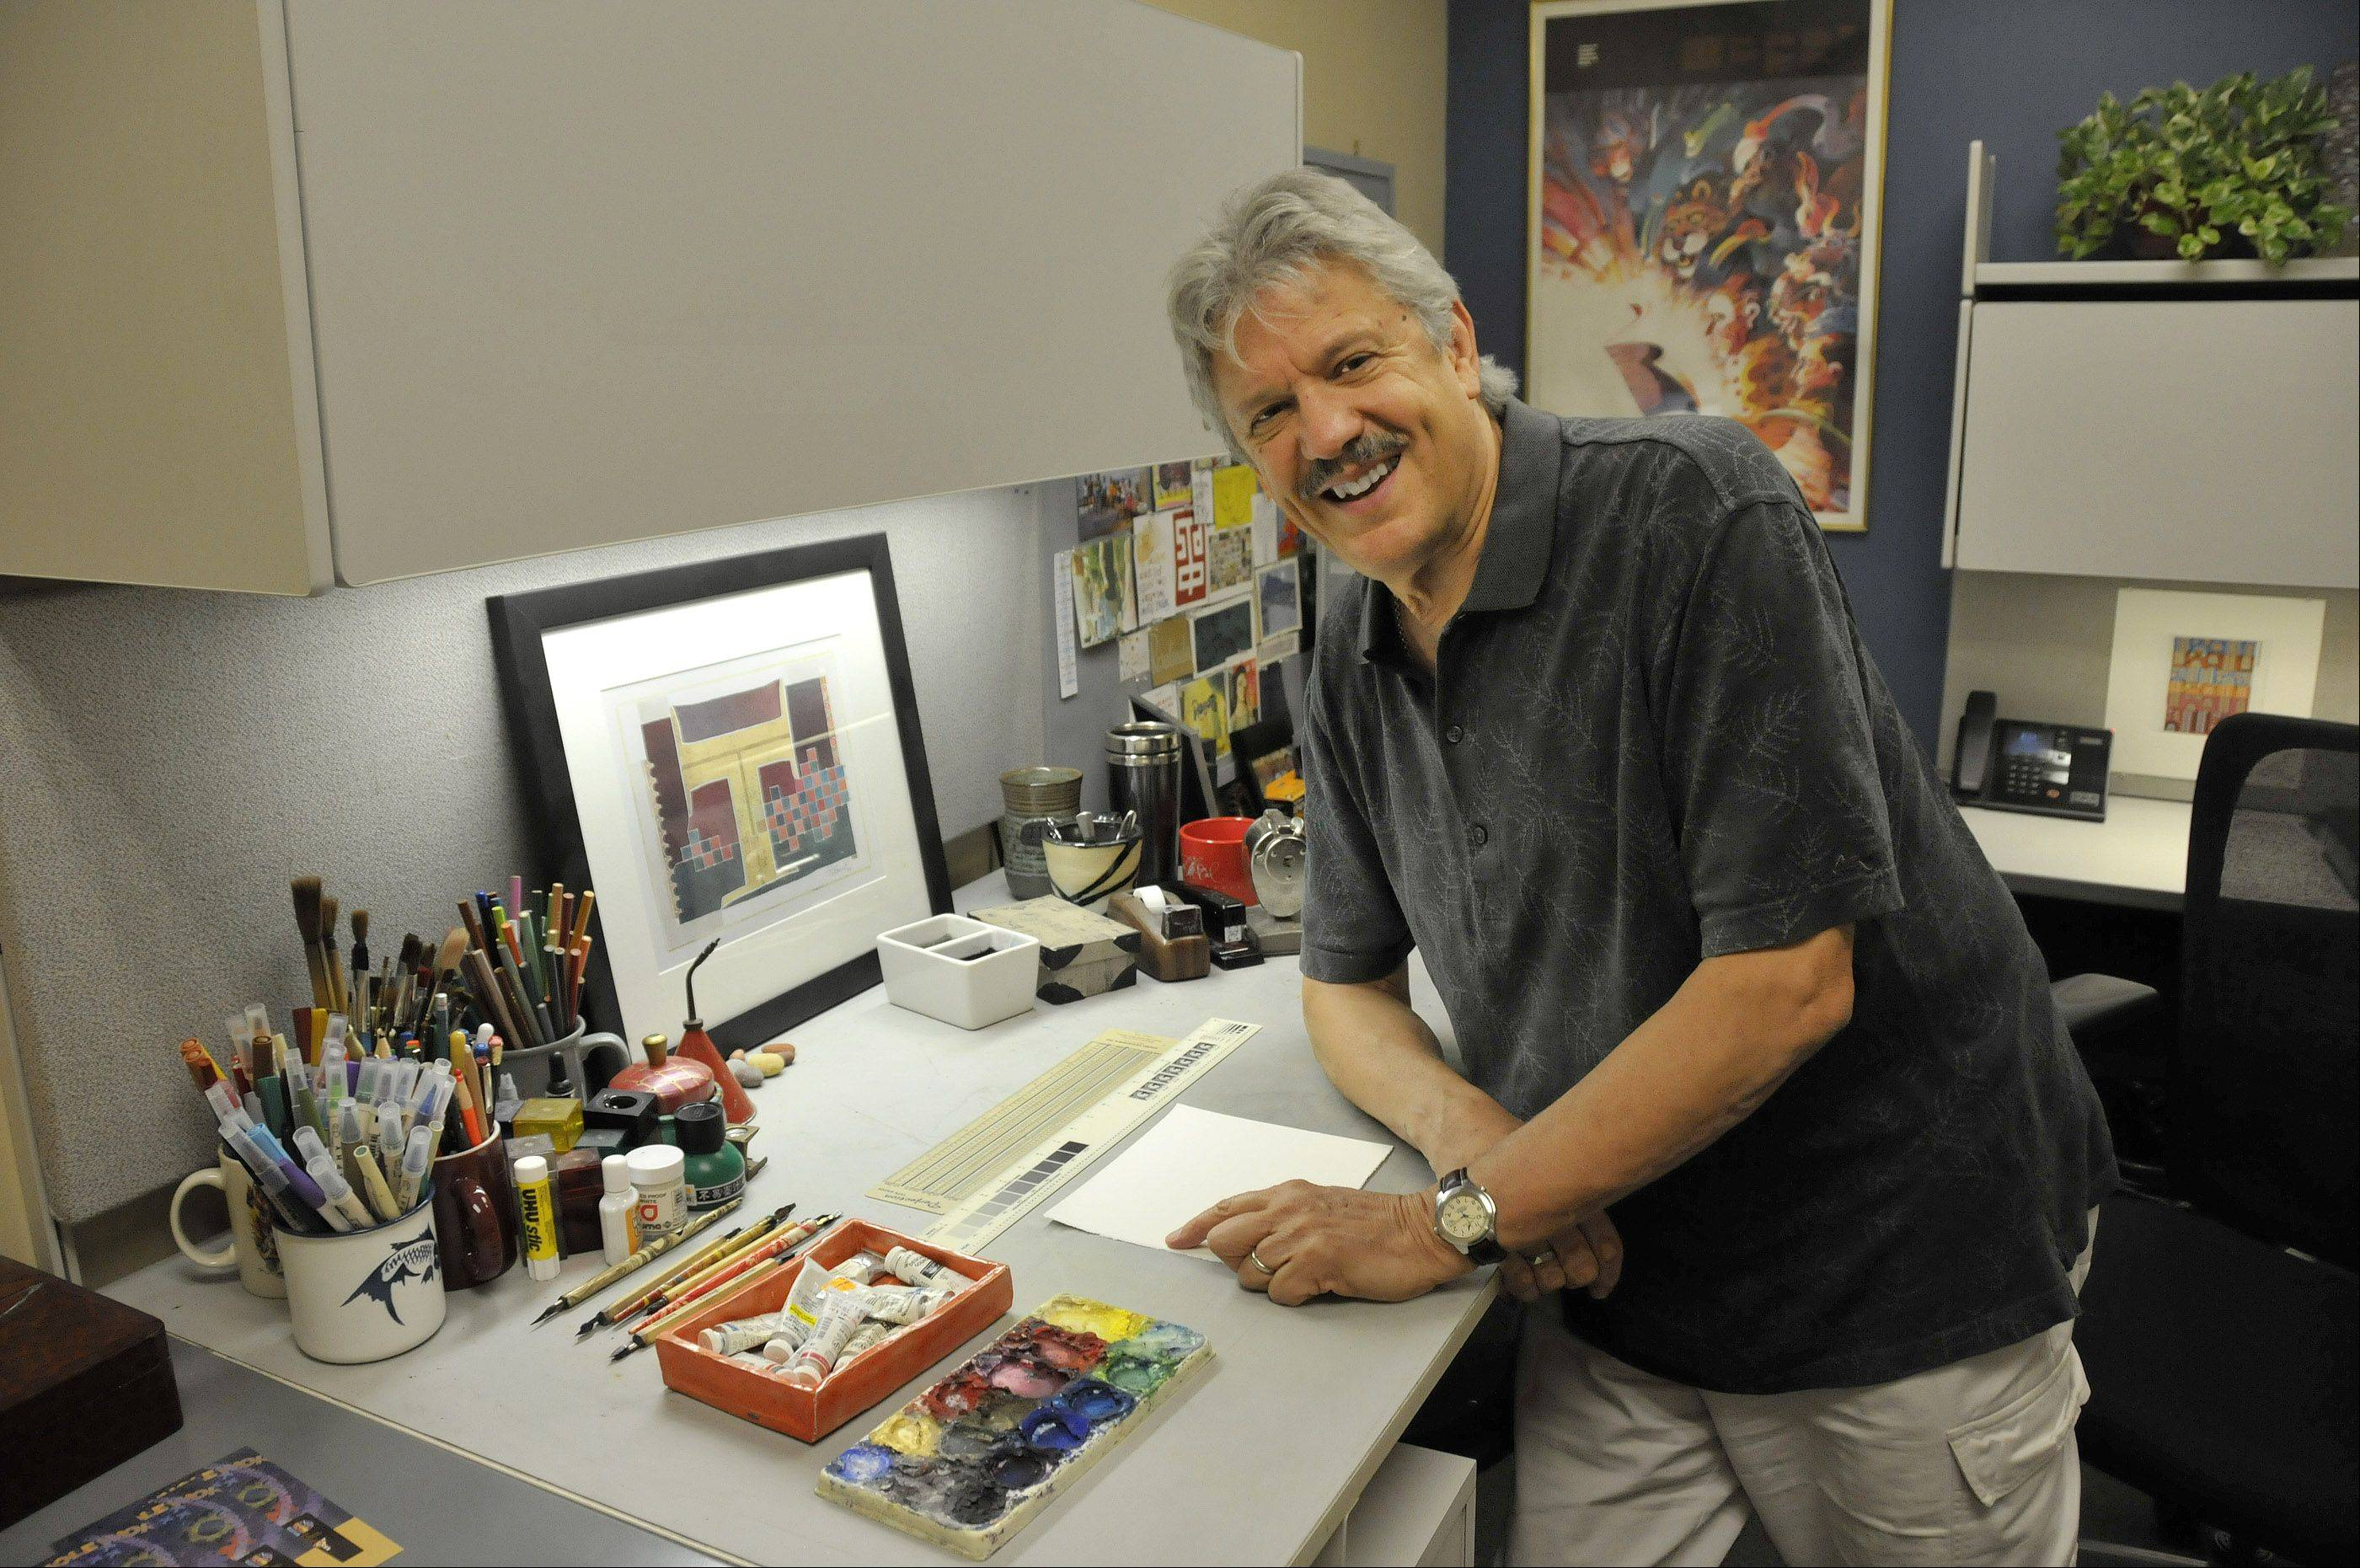 Timothy Botts soon will be cleaning out his office at Tyndale House Publishers in Carol Stream, where he has worked for 40 years.